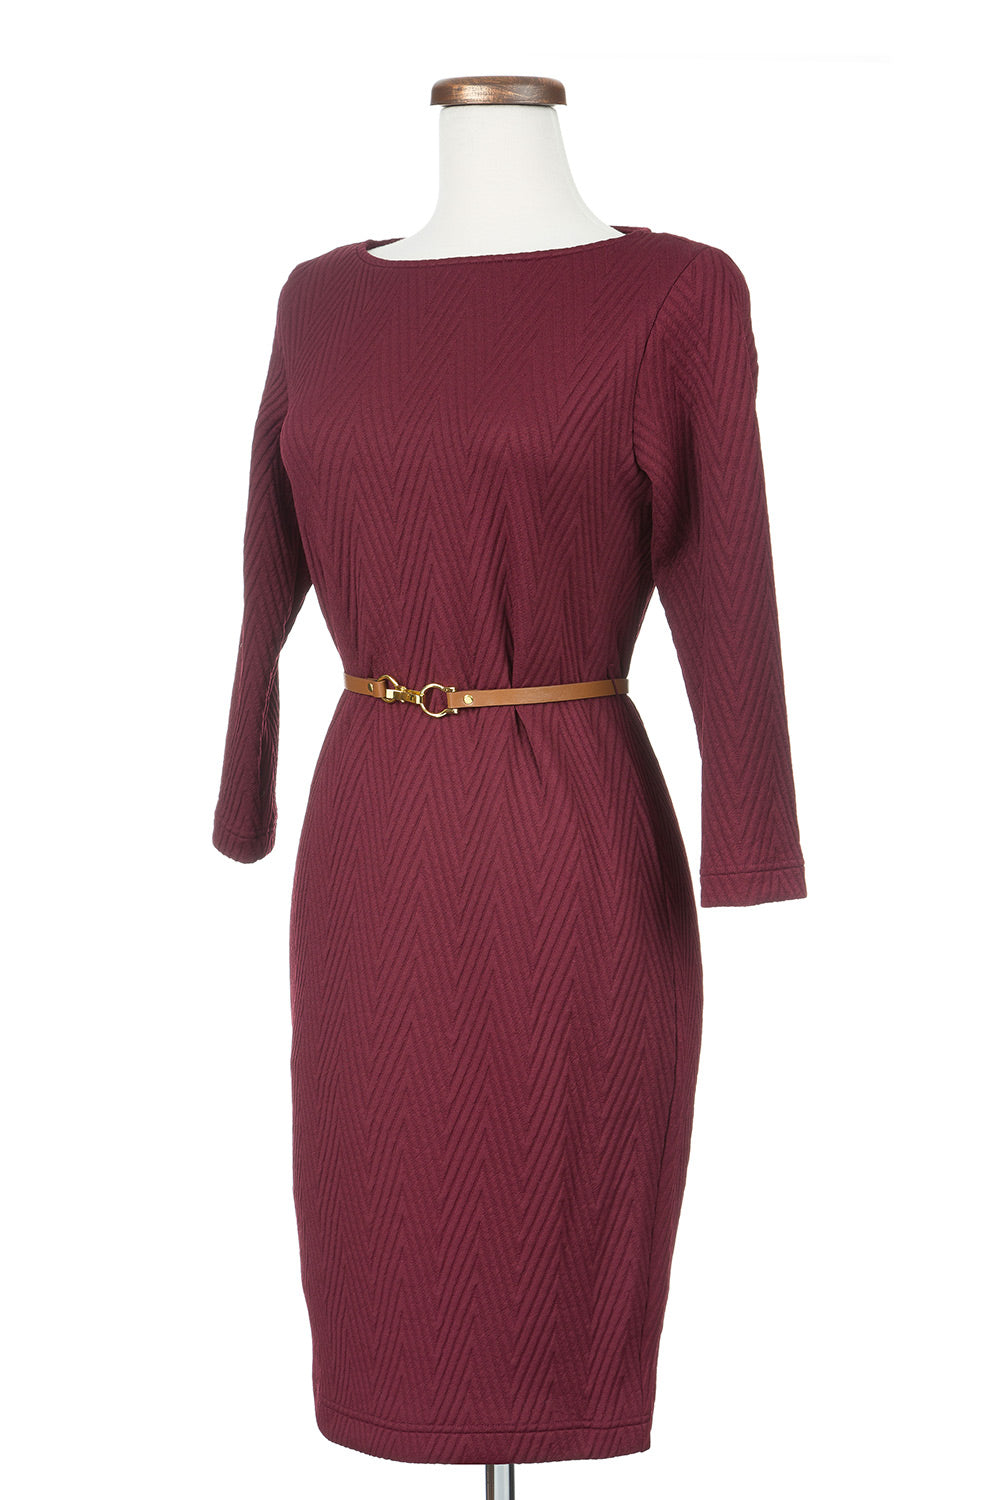 Type 3 Cocktail Party Dress in Burgundy